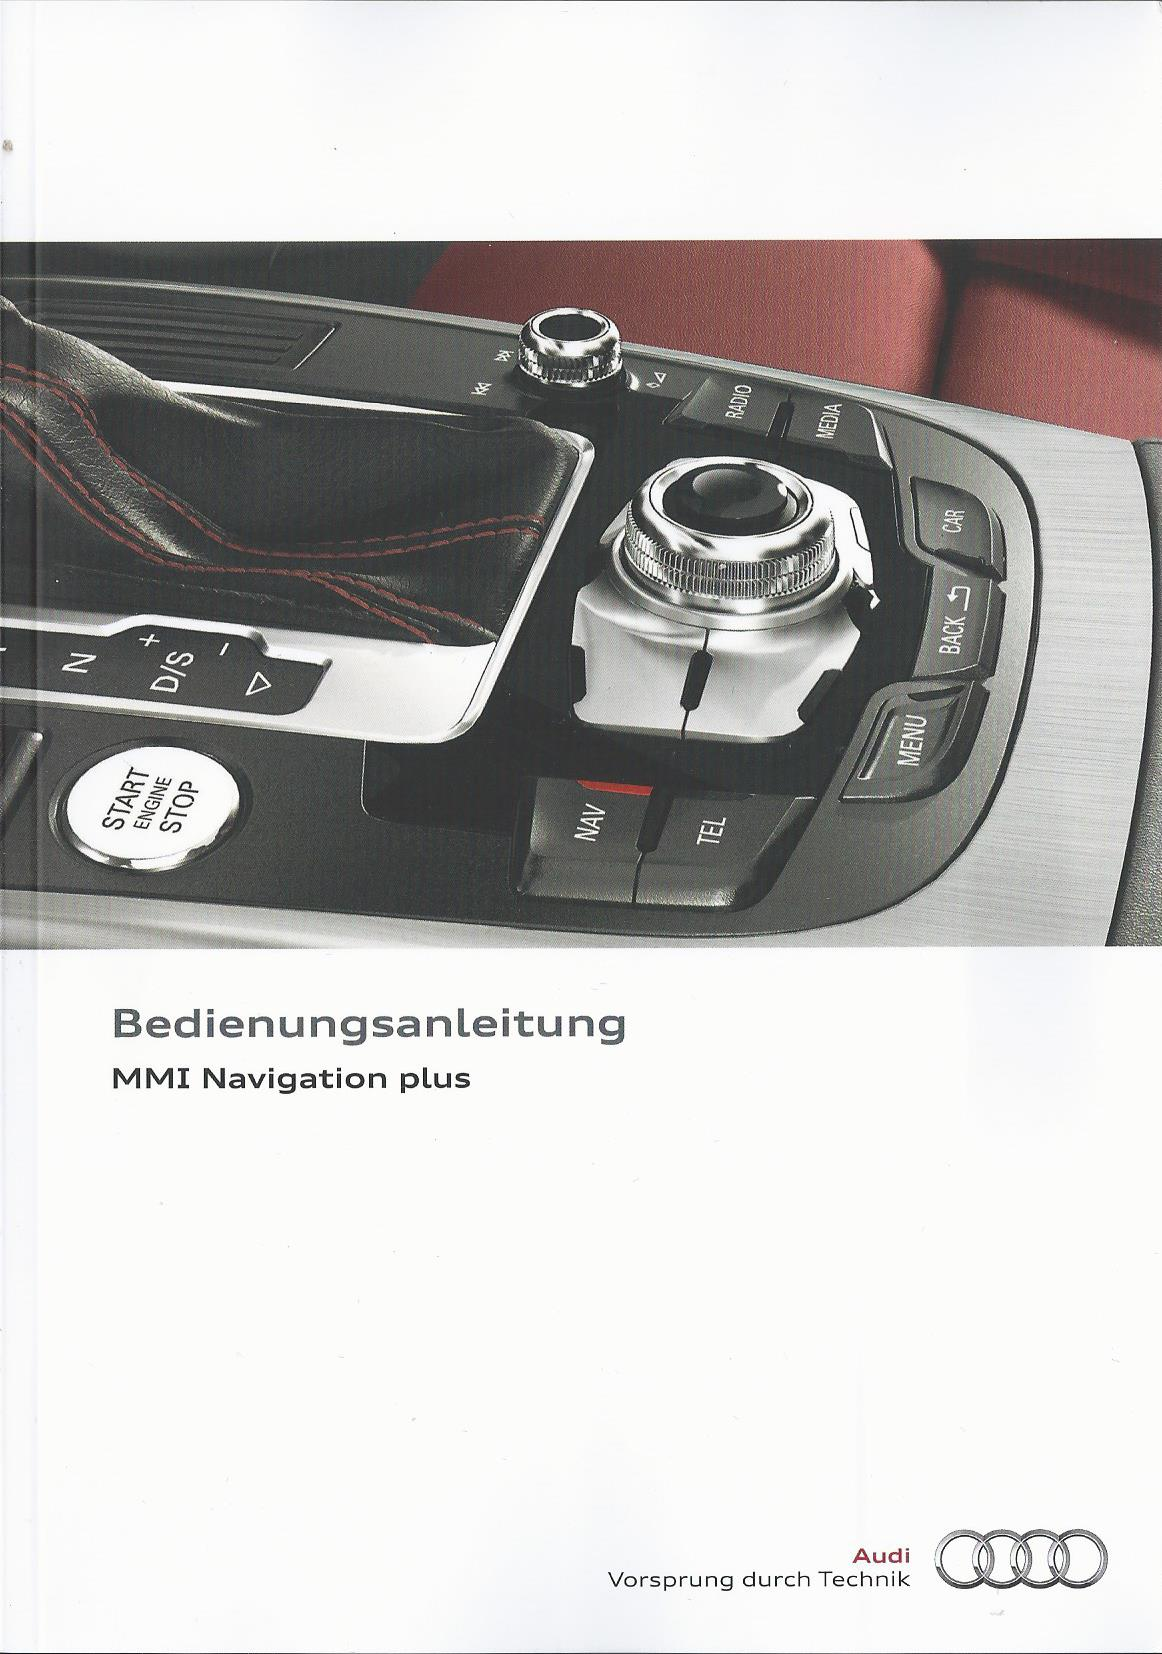 audi mmi navigation plus betriebsanleitung 2014 bedienungsanleitung 4mh rn ebay. Black Bedroom Furniture Sets. Home Design Ideas